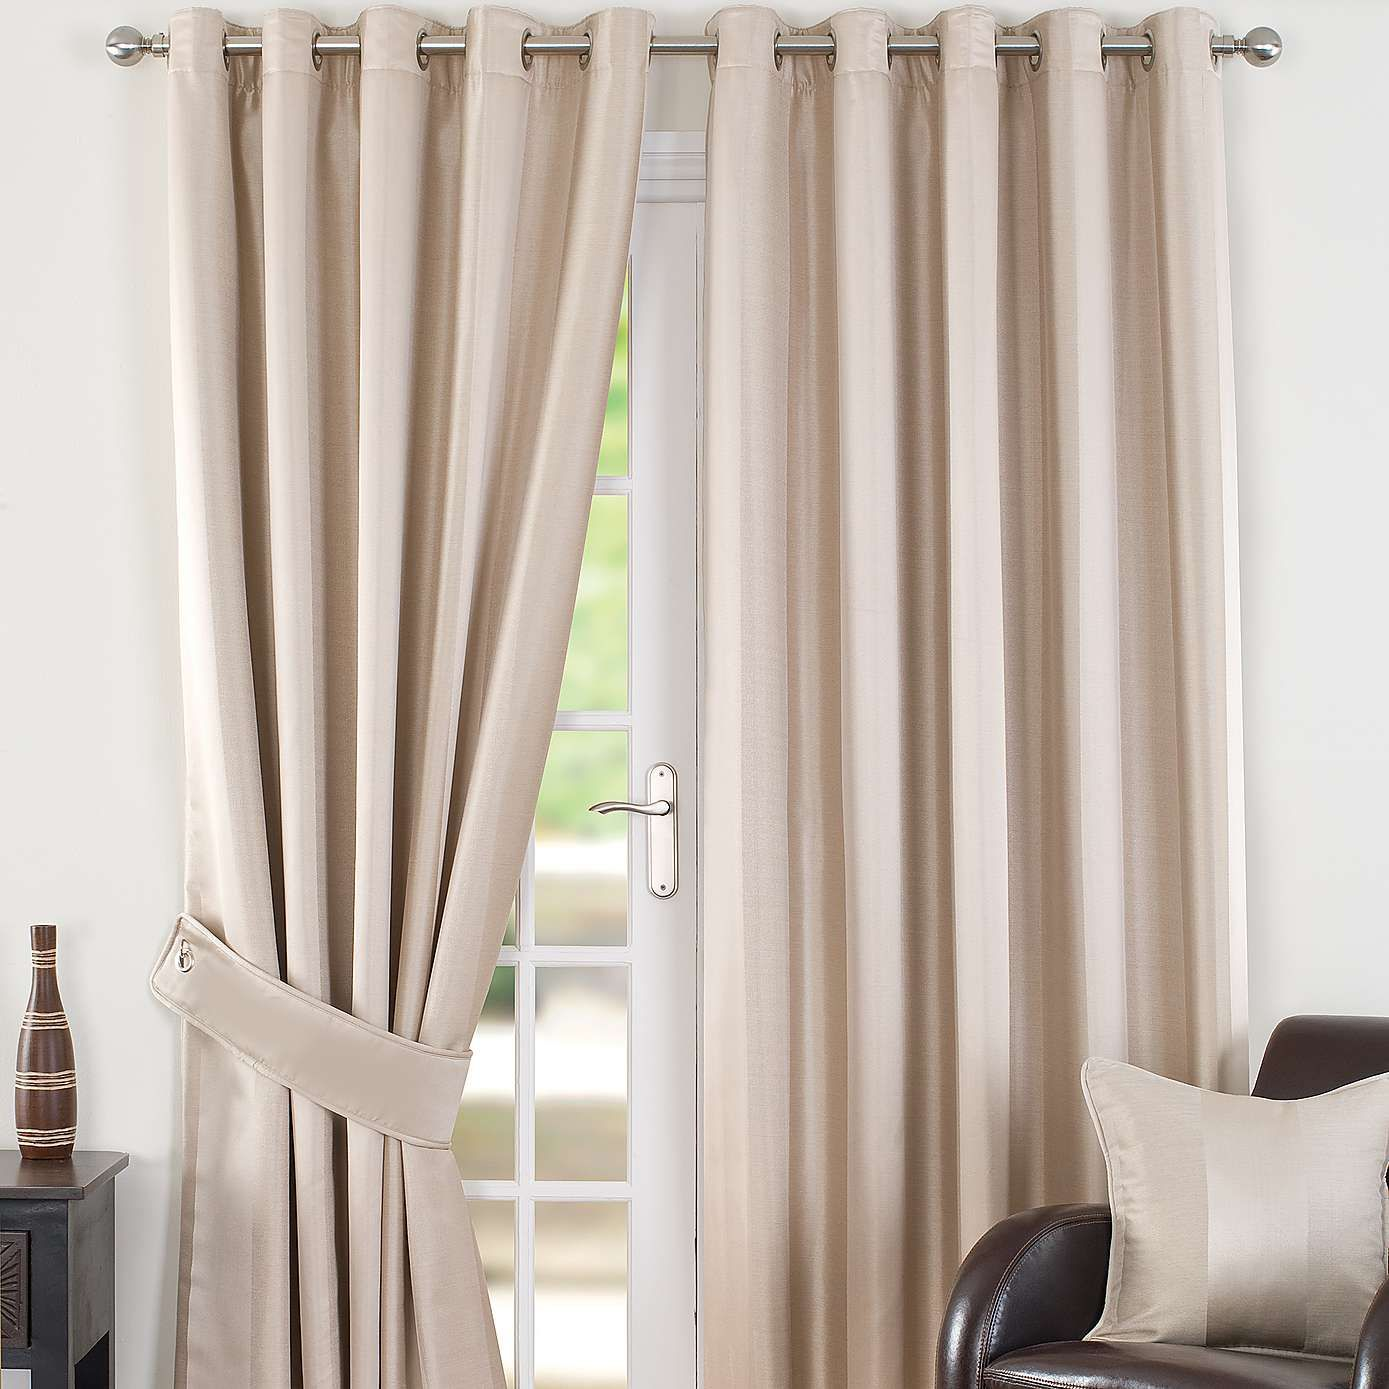 Bedding Curtains Blinds Furniture More DunelmCream CurtainsNet CurtainsCurtain PolesLiving Room